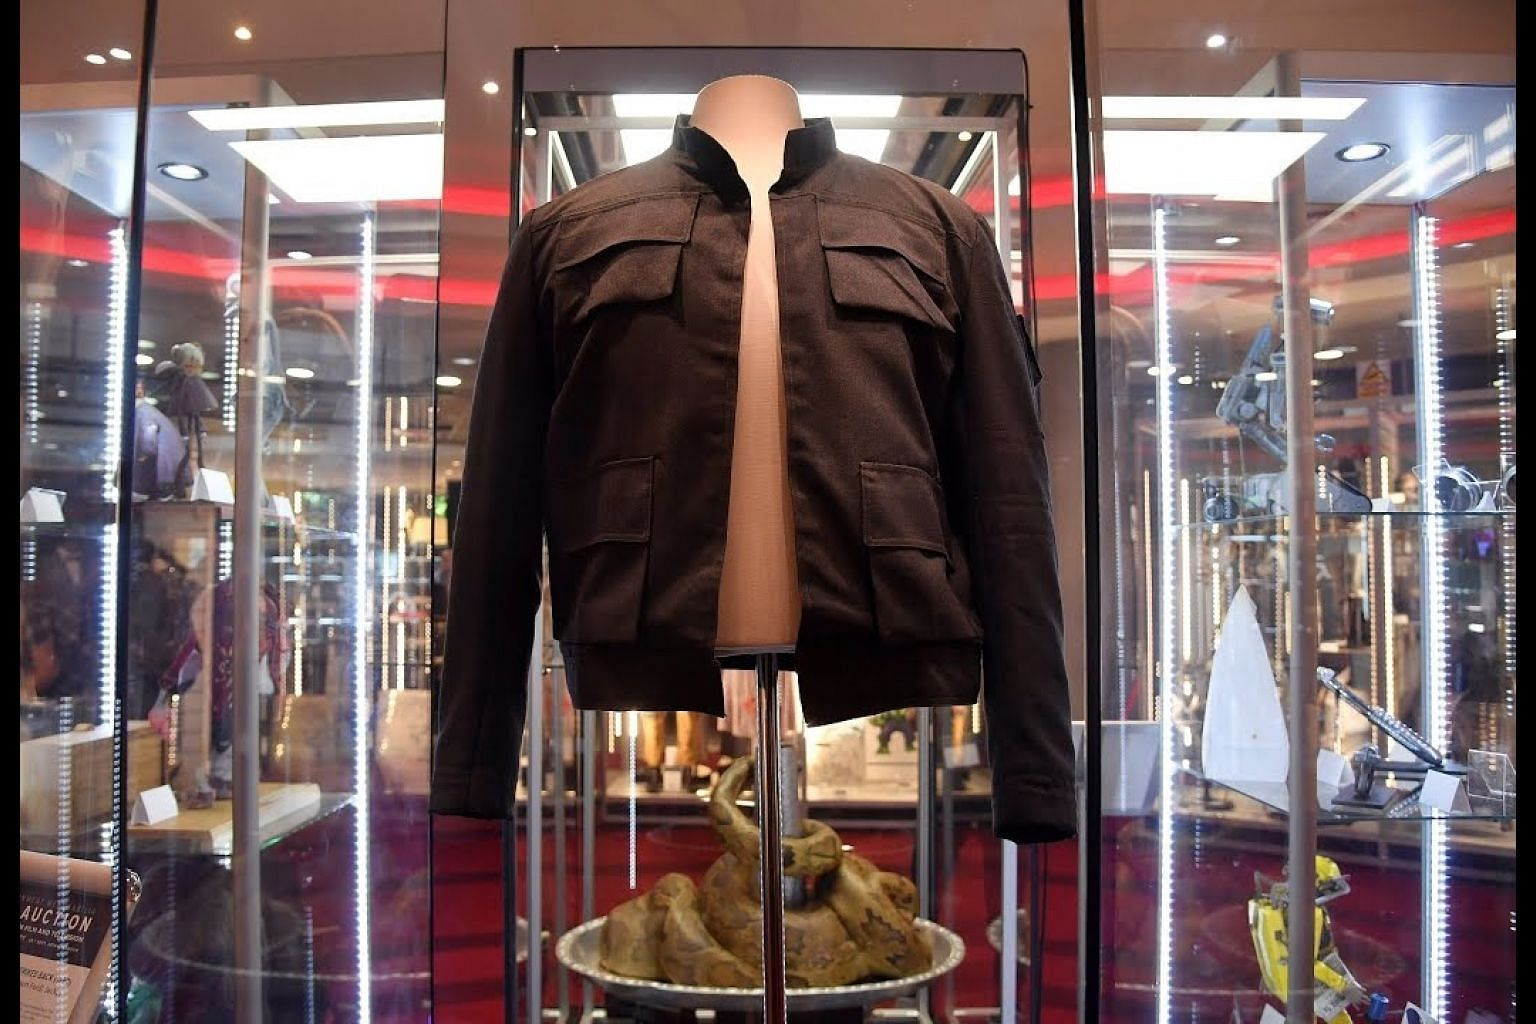 Han Solo jacket, Marty McFly hoverboard up for sale